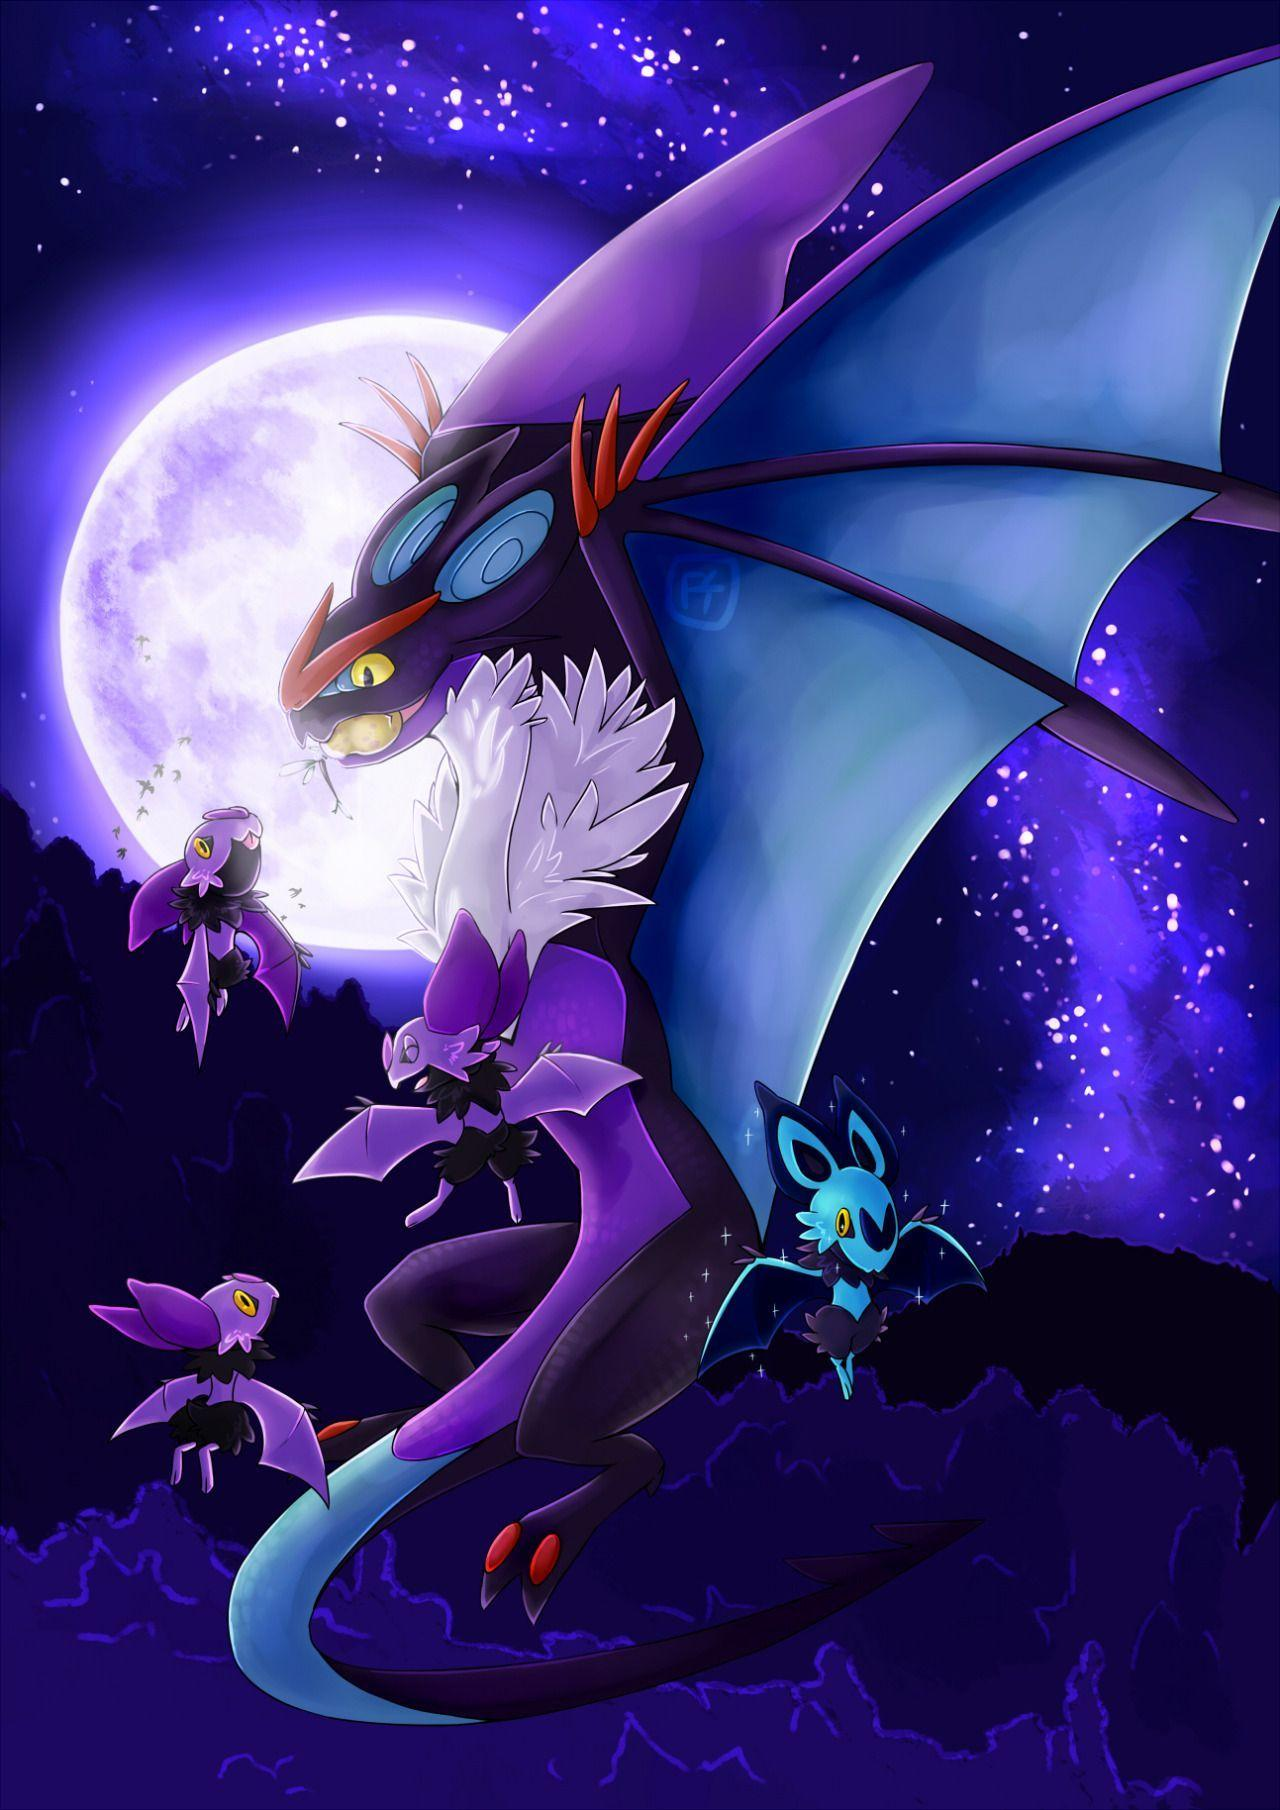 Noivern & Noibat | Pokemon | Pinterest | Pokémon, Anime and Pokemon ...